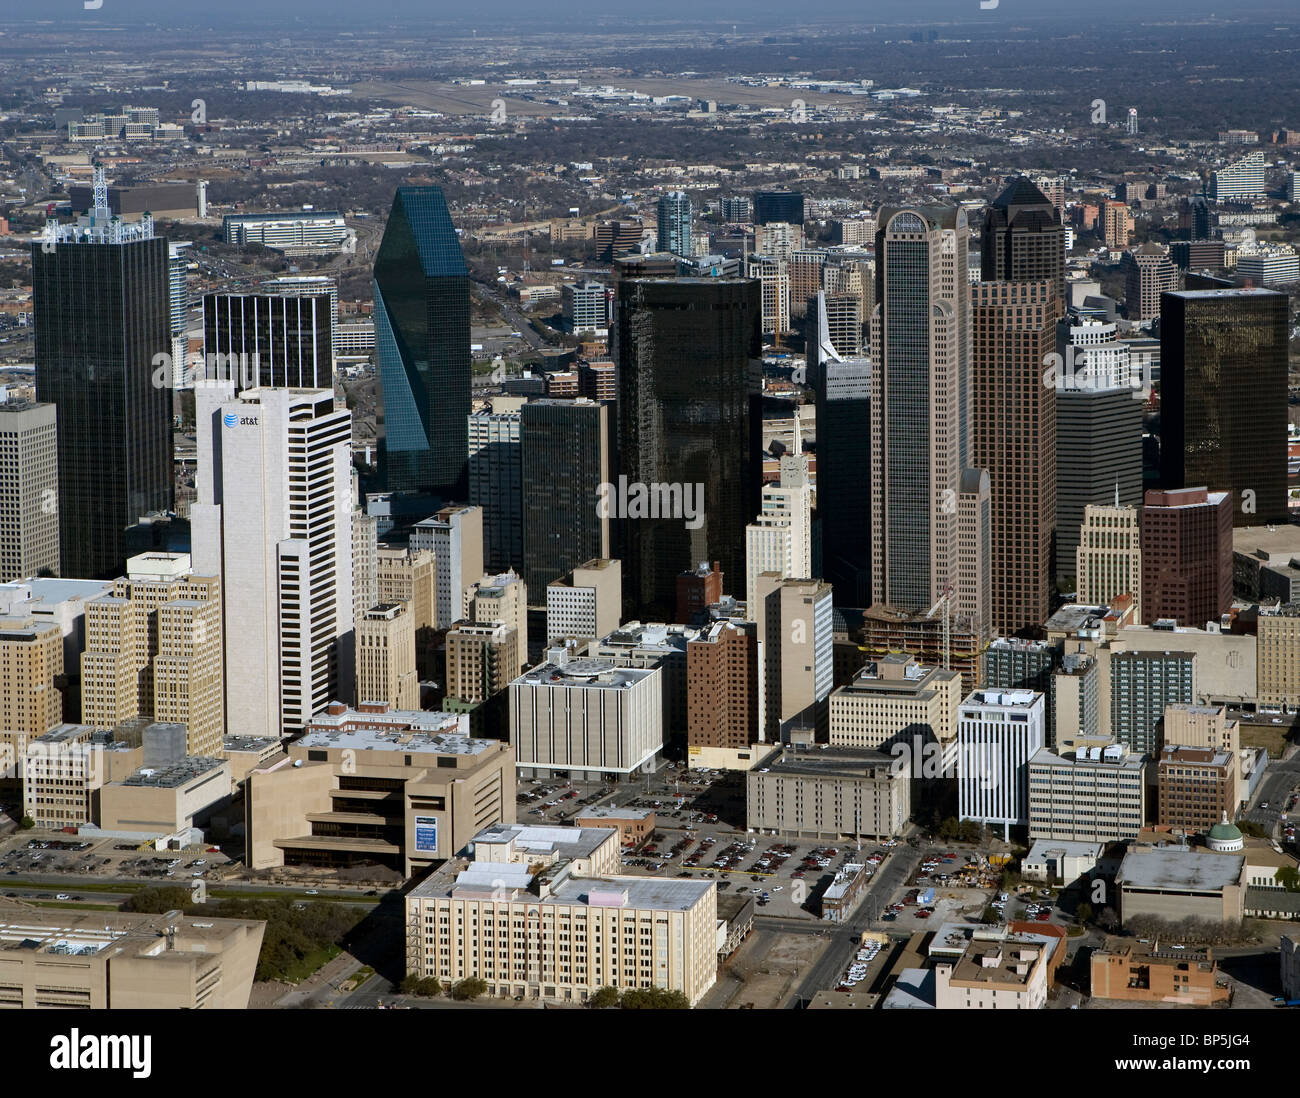 aerial view above skyline downtown Dallas Texas - Stock Image